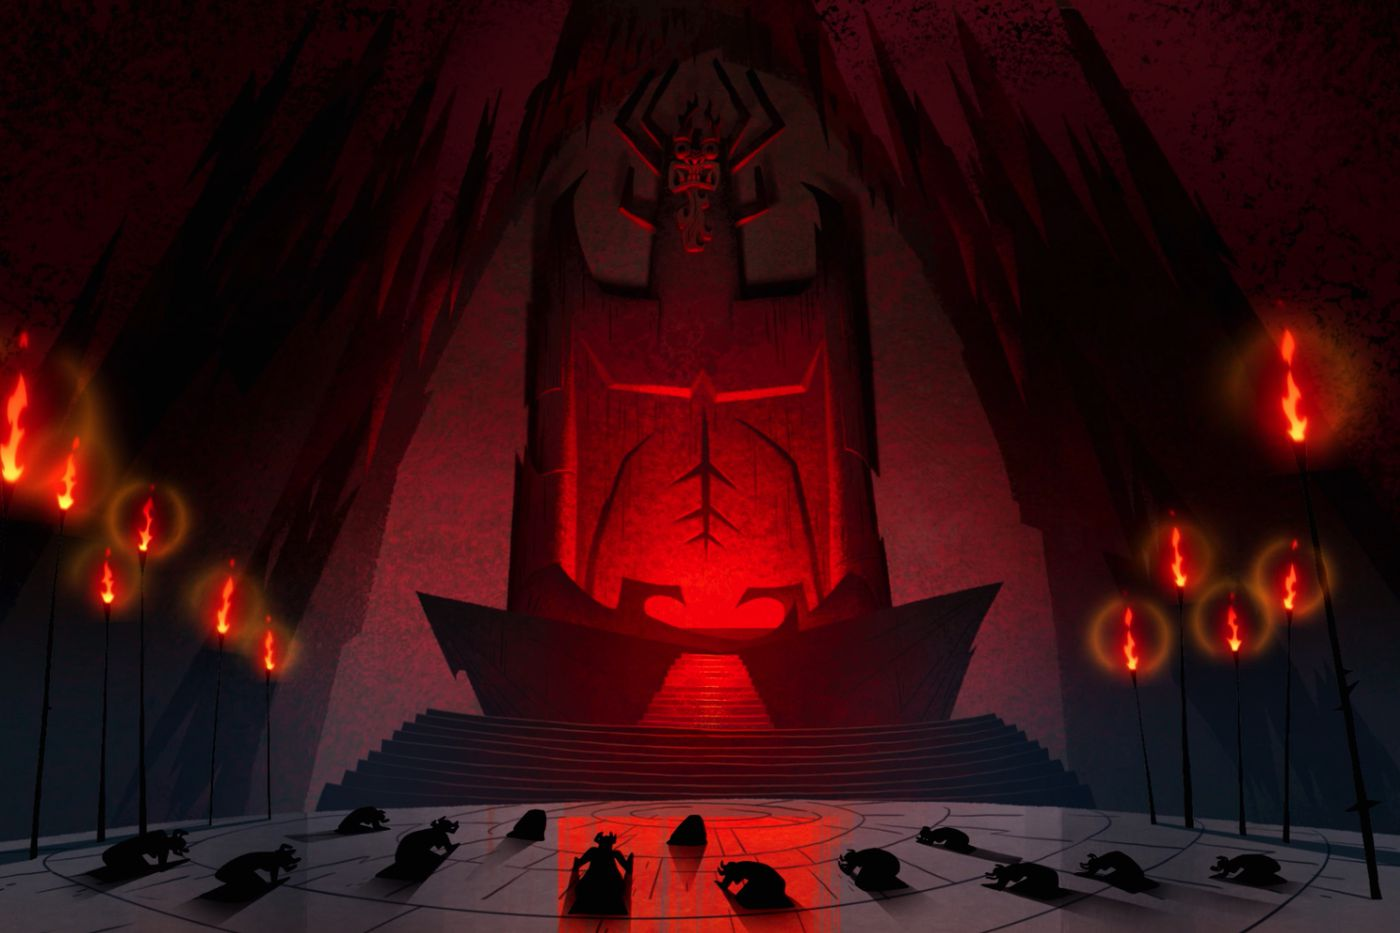 Genndy Tartakovsky On Reviving Samurai Jack I Was Out Of Shape For Working This Hard Again The Verge